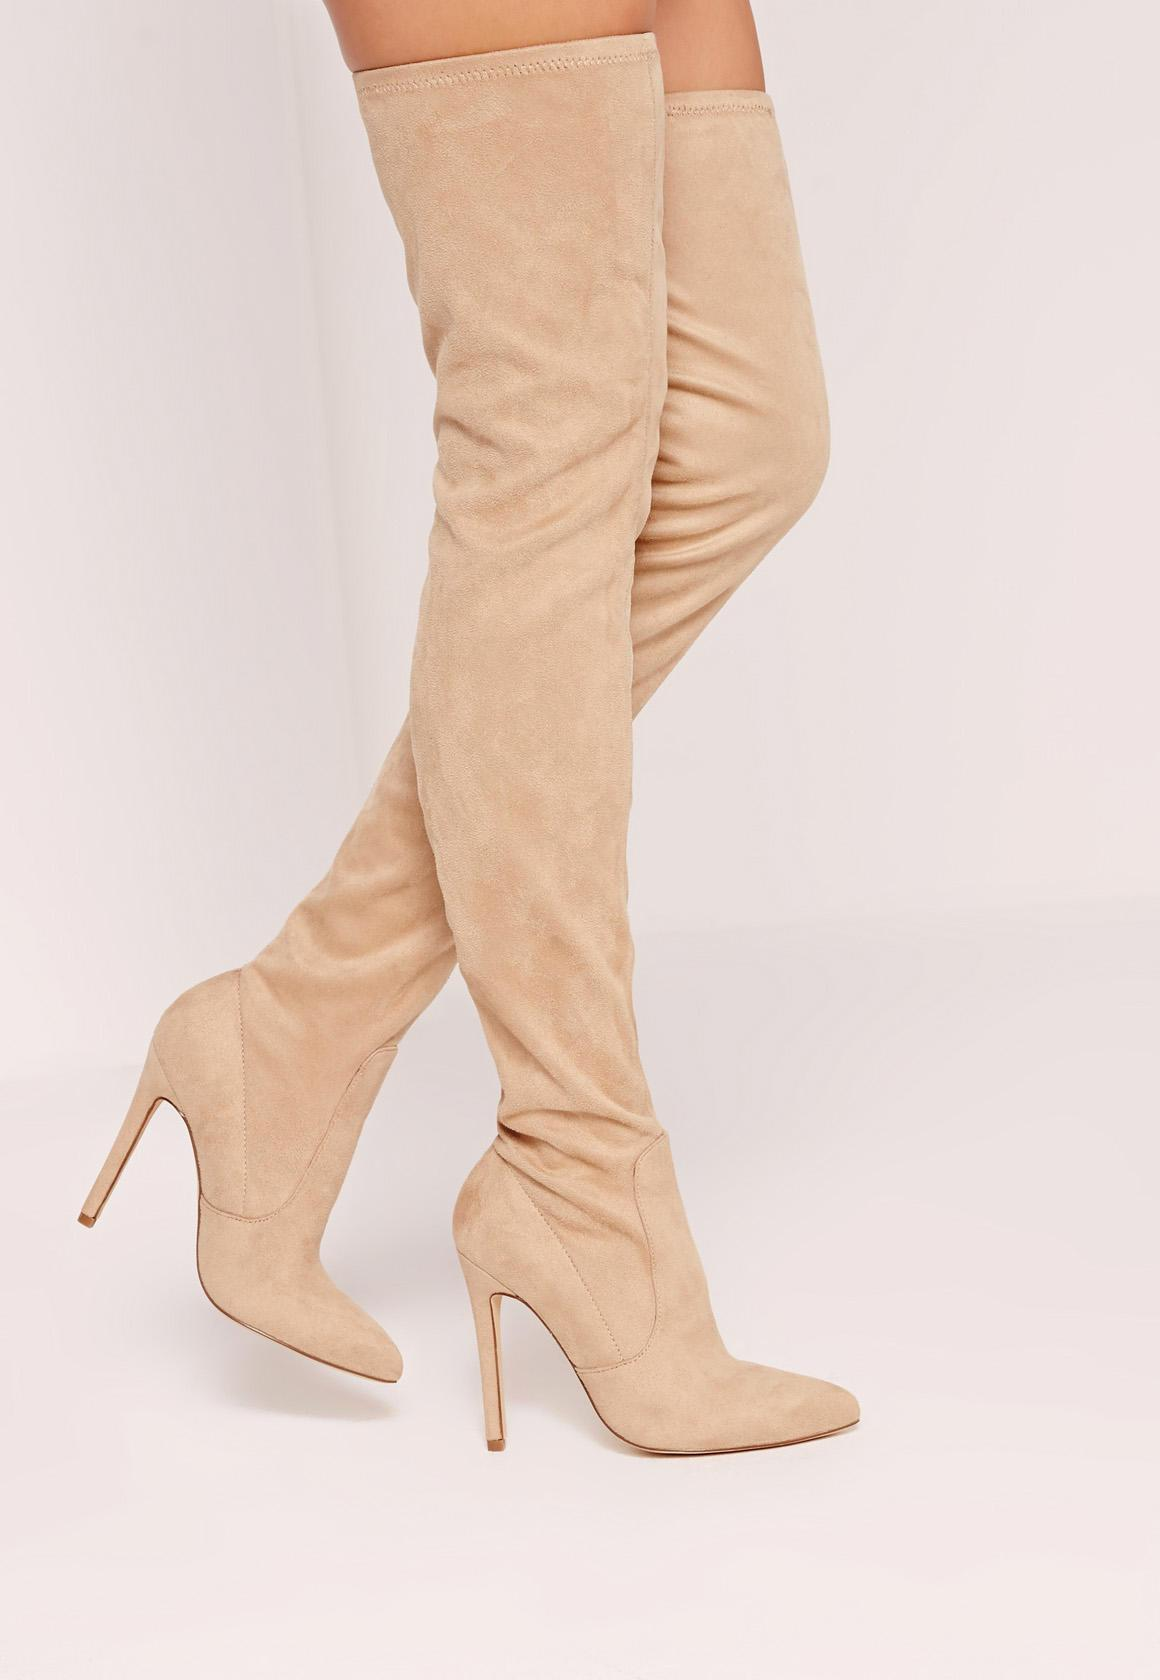 Nude Faux Suede Pointed Toe Over The Knee Heeled Boots